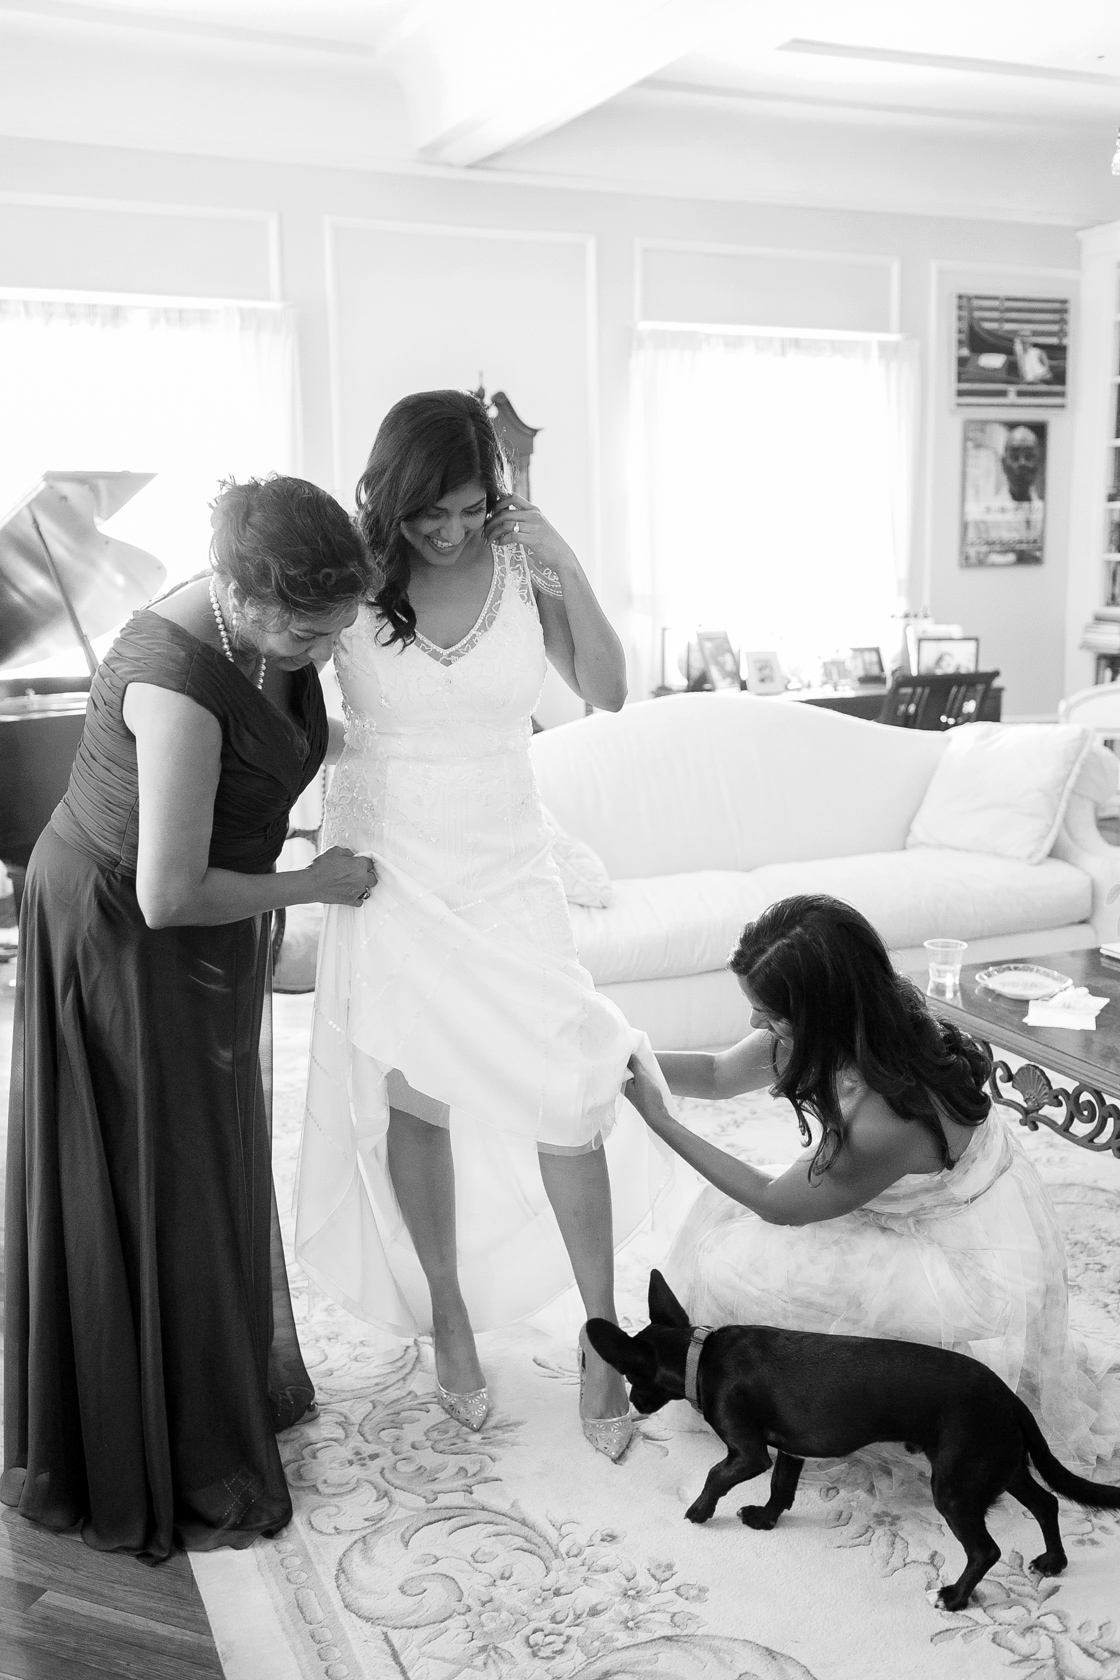 wedding preparation details getting dressed with mom and sister 02